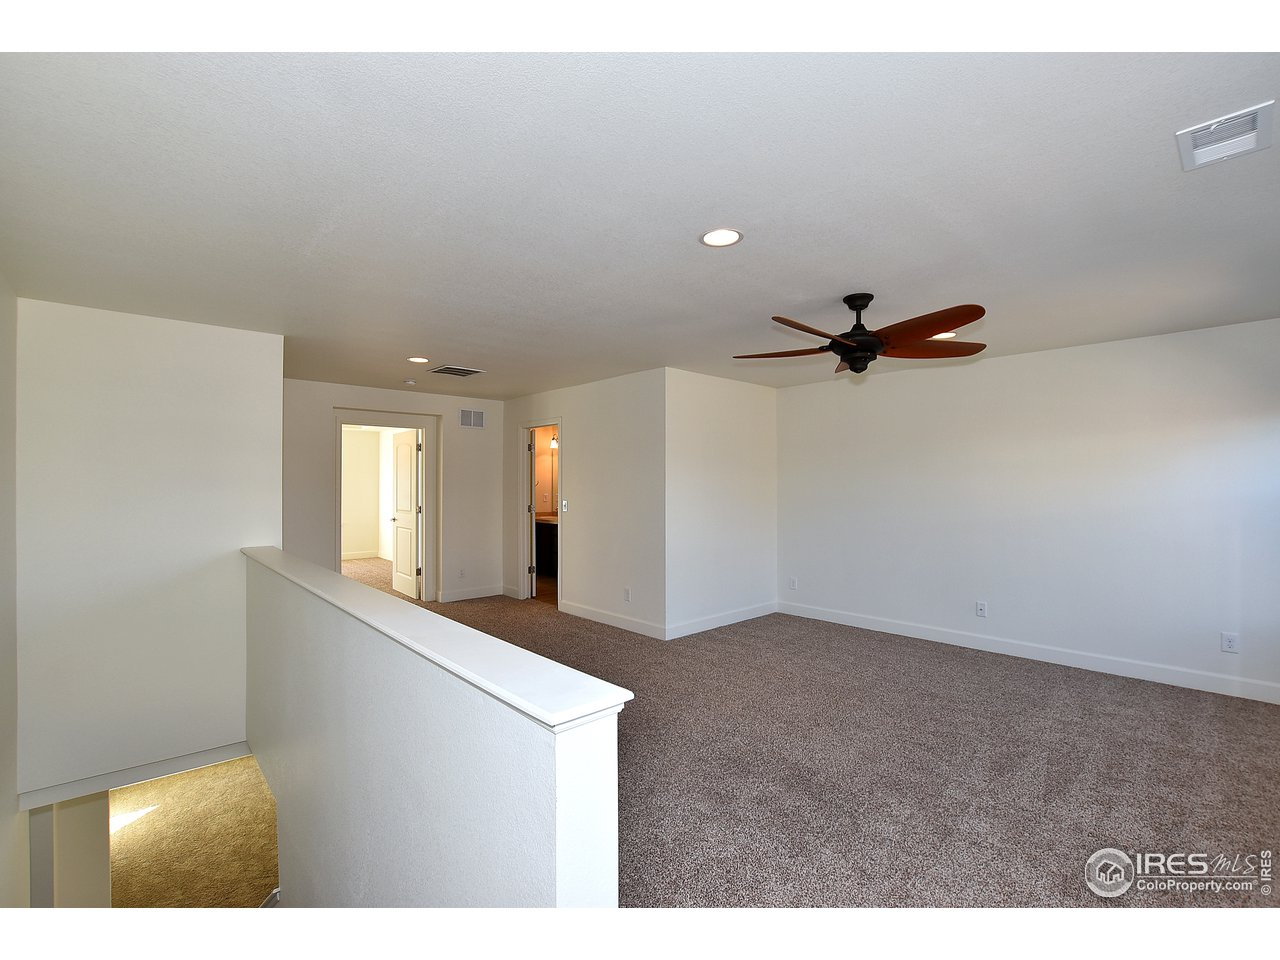 Generous upper loft area with mountain views!